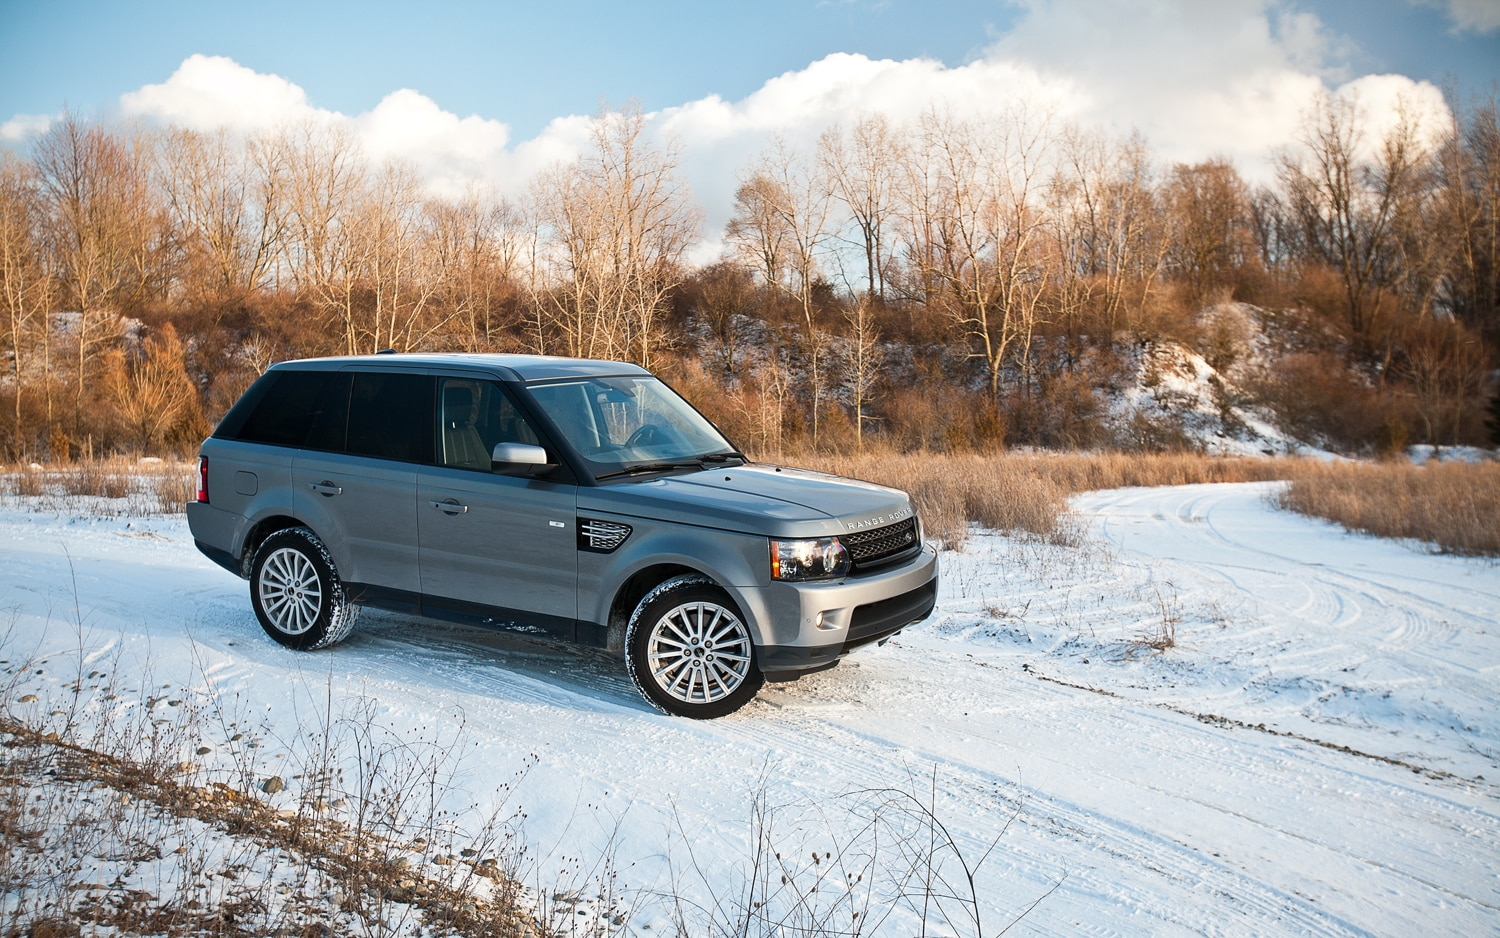 2012 Range Rover Sport HSE Front Right Side View1